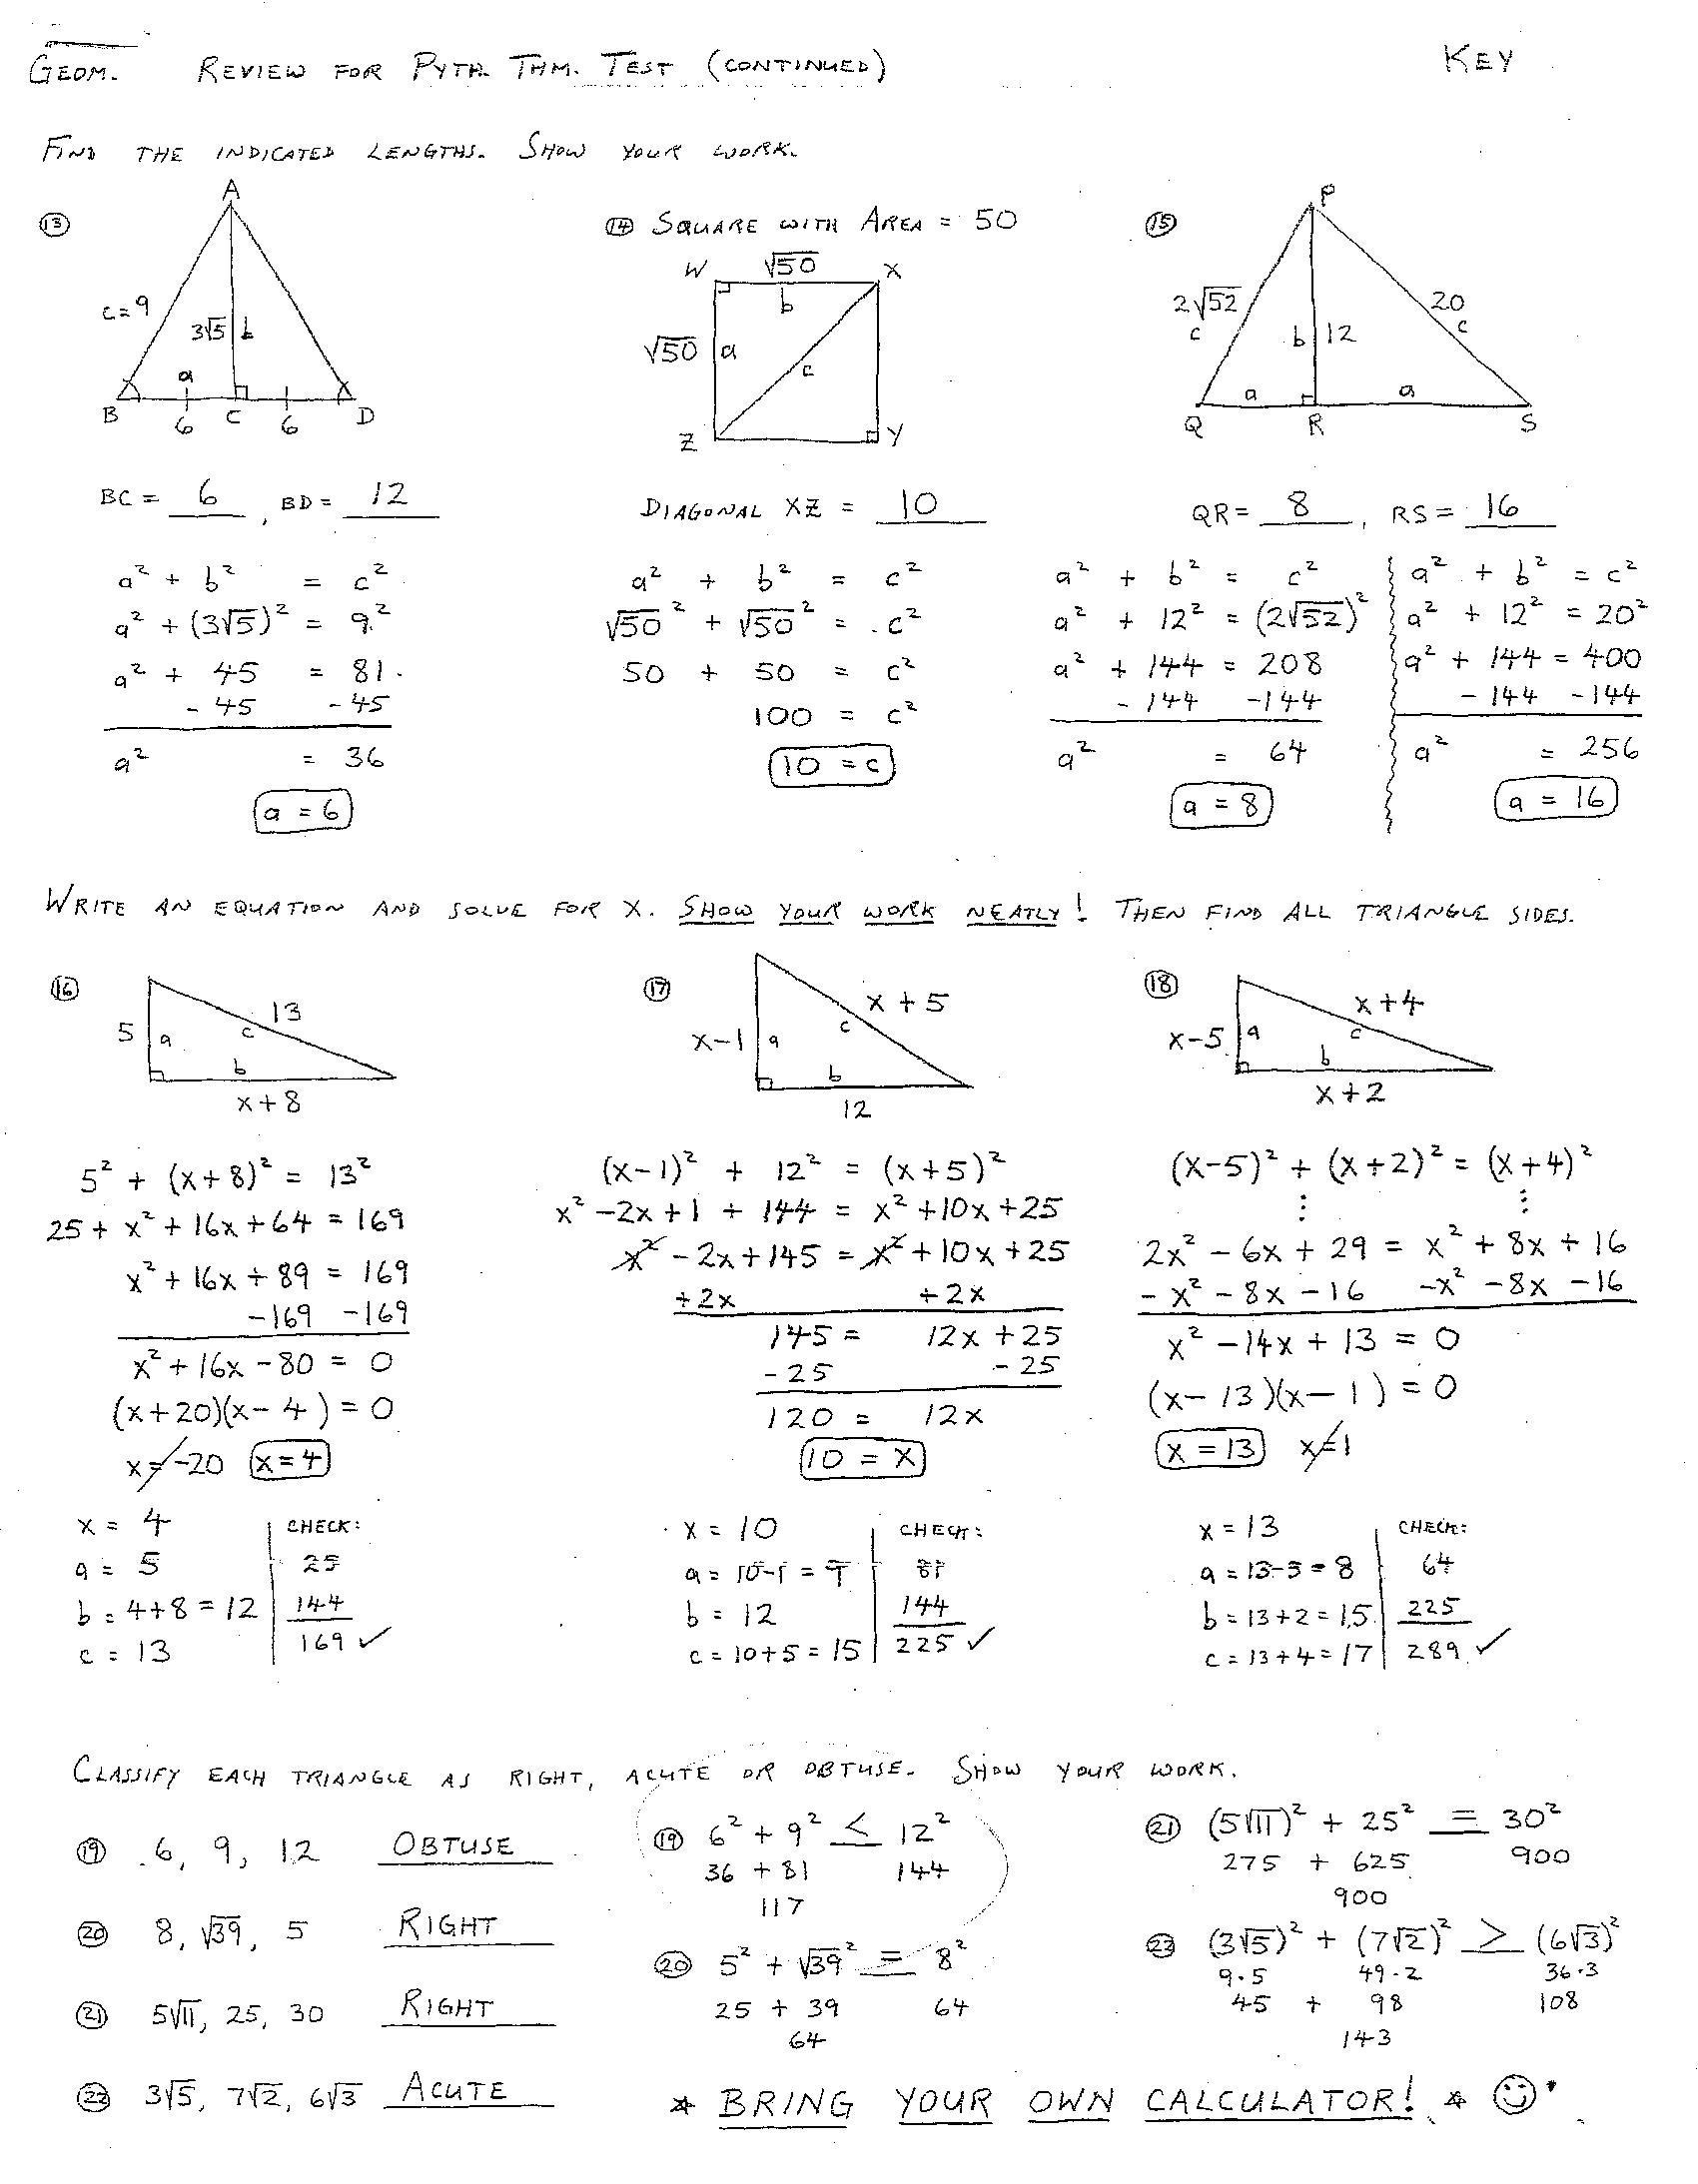 Proving Triangles Congruent Worksheet Answers 35 Congruent Triangles Worksheet Answers Worksheet Project